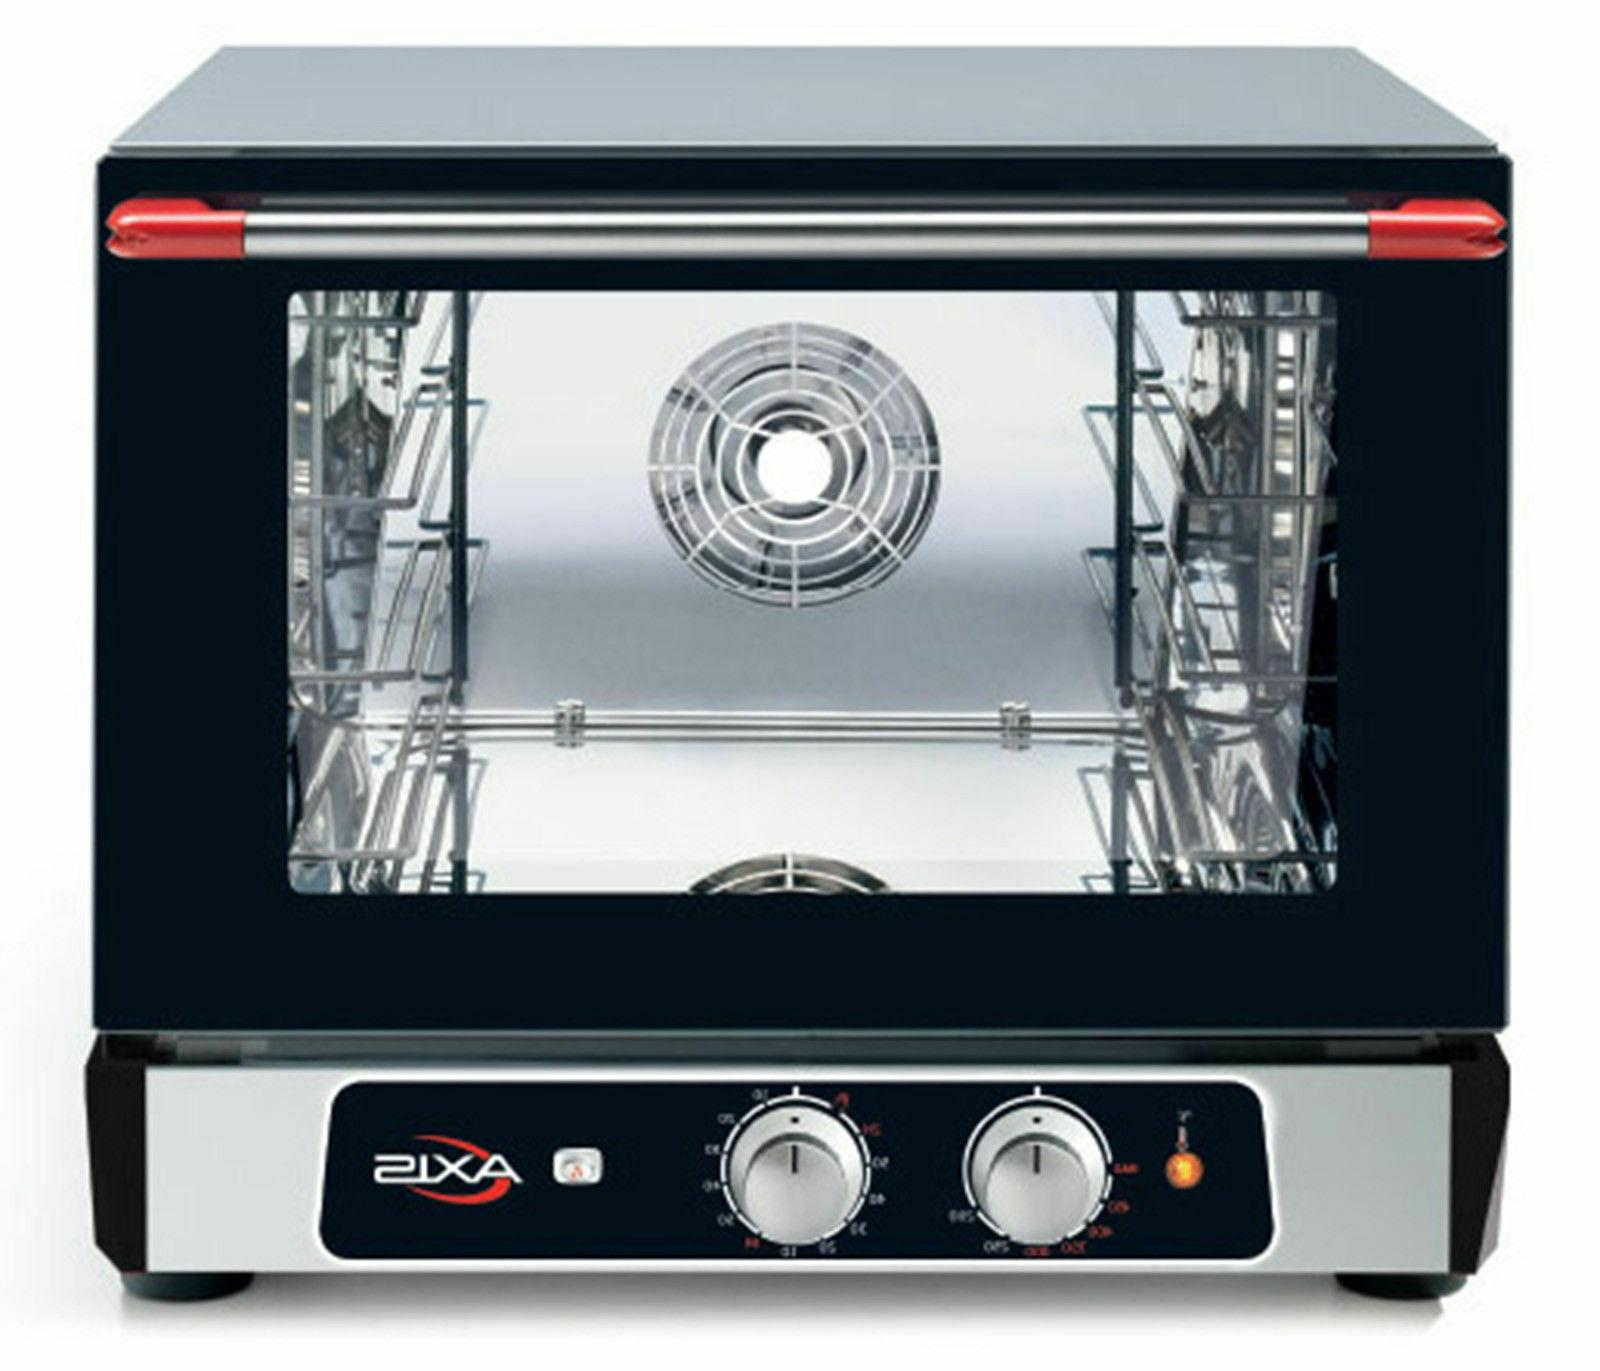 axis ax 513rh convection oven countertop 1